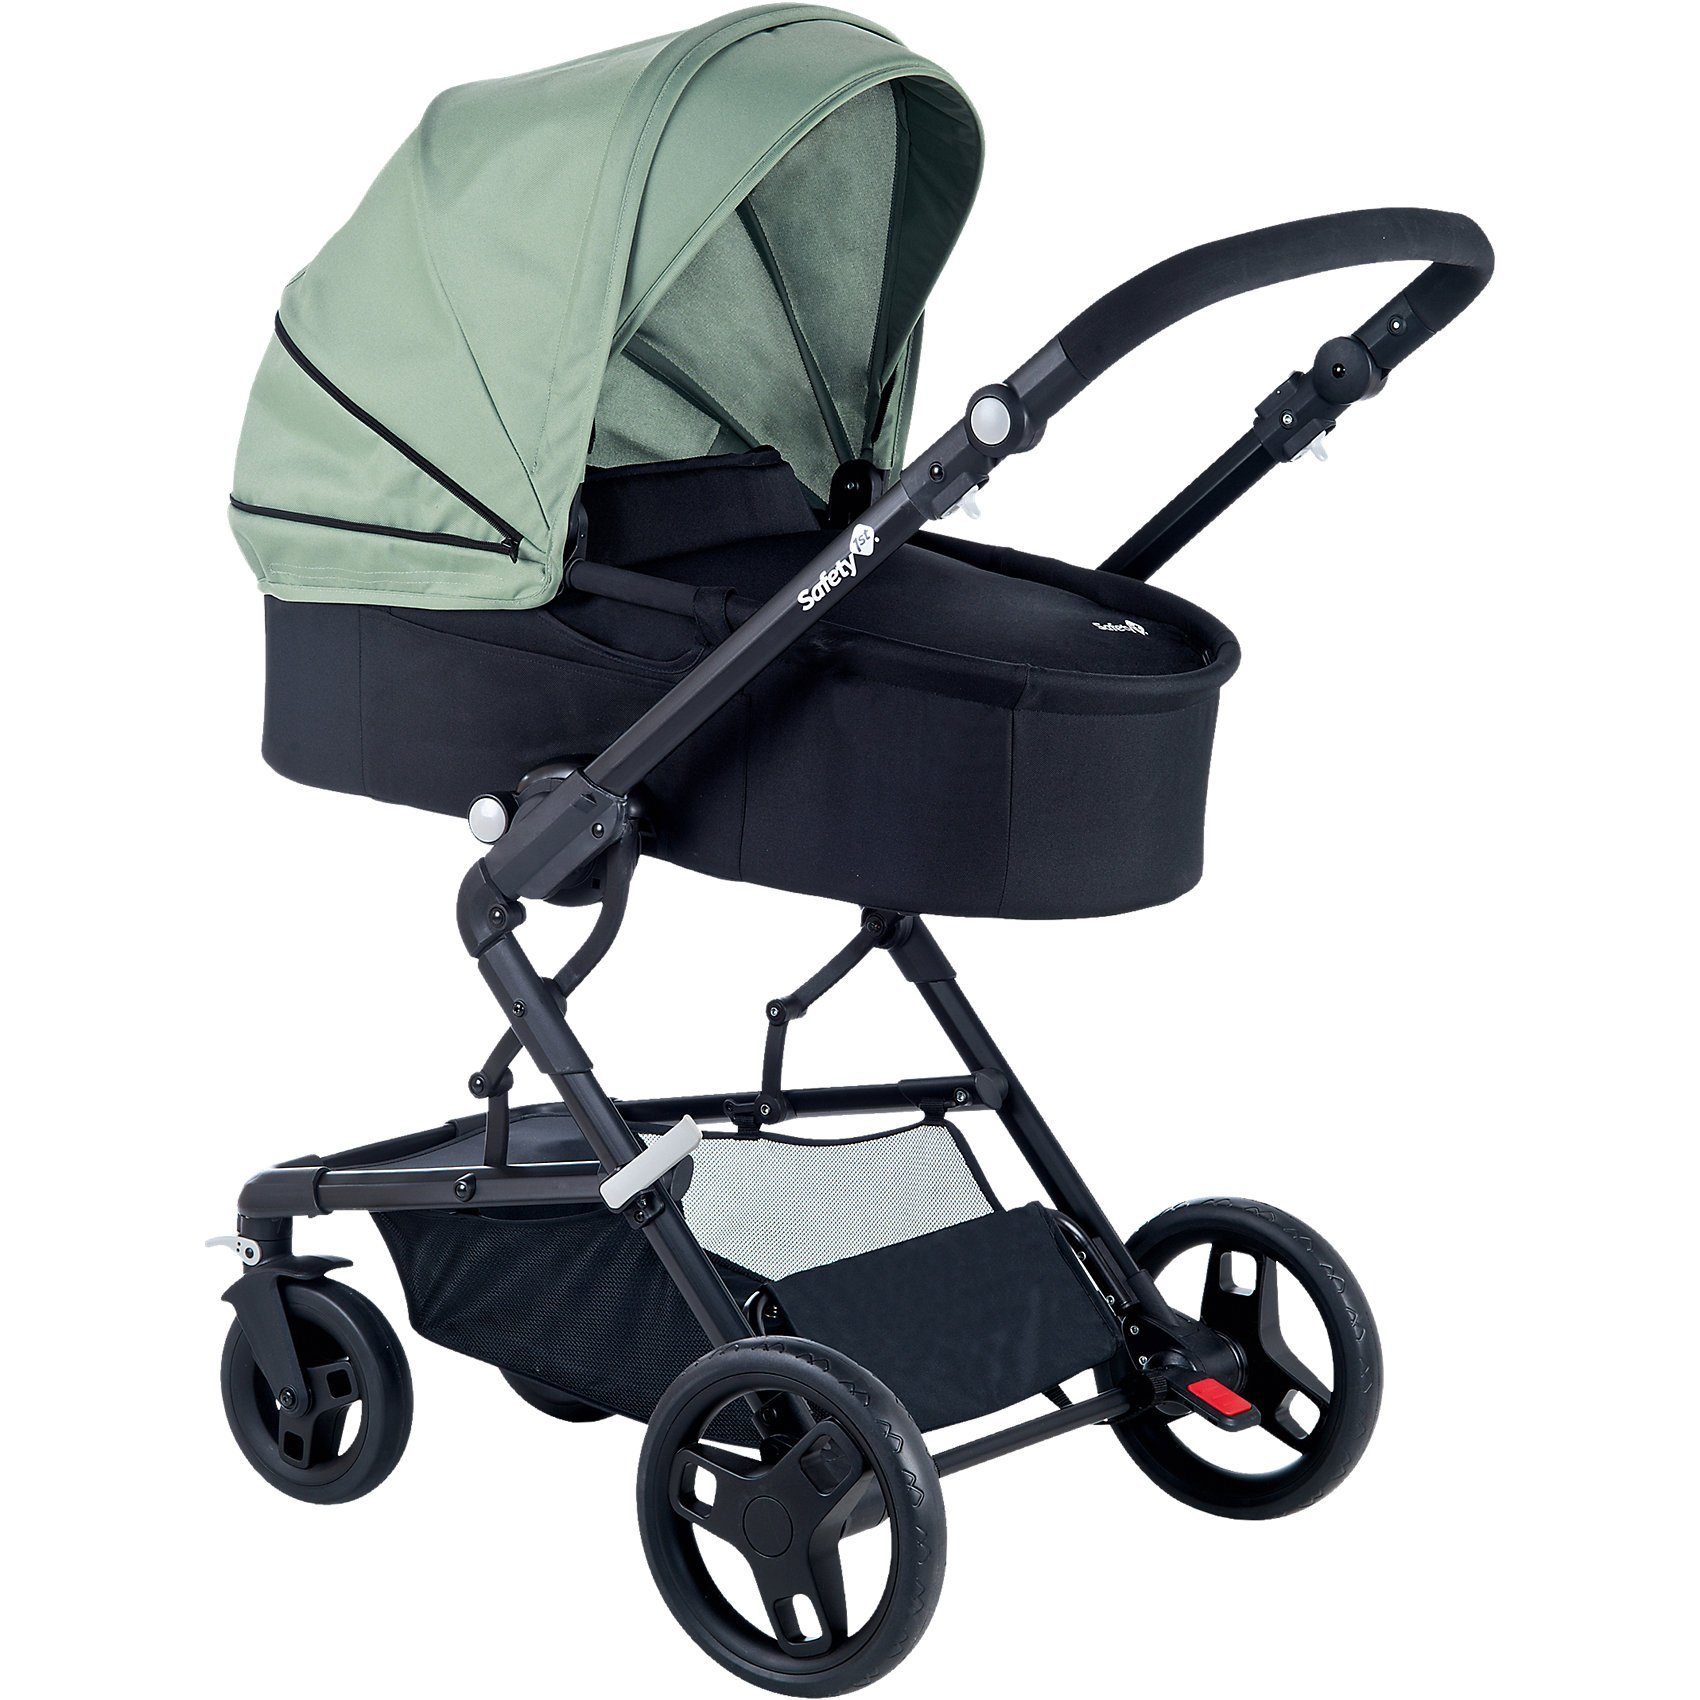 Safety 1st Kombi Kinderwagen Kokoon Comfort Set, Green Hill, 2016